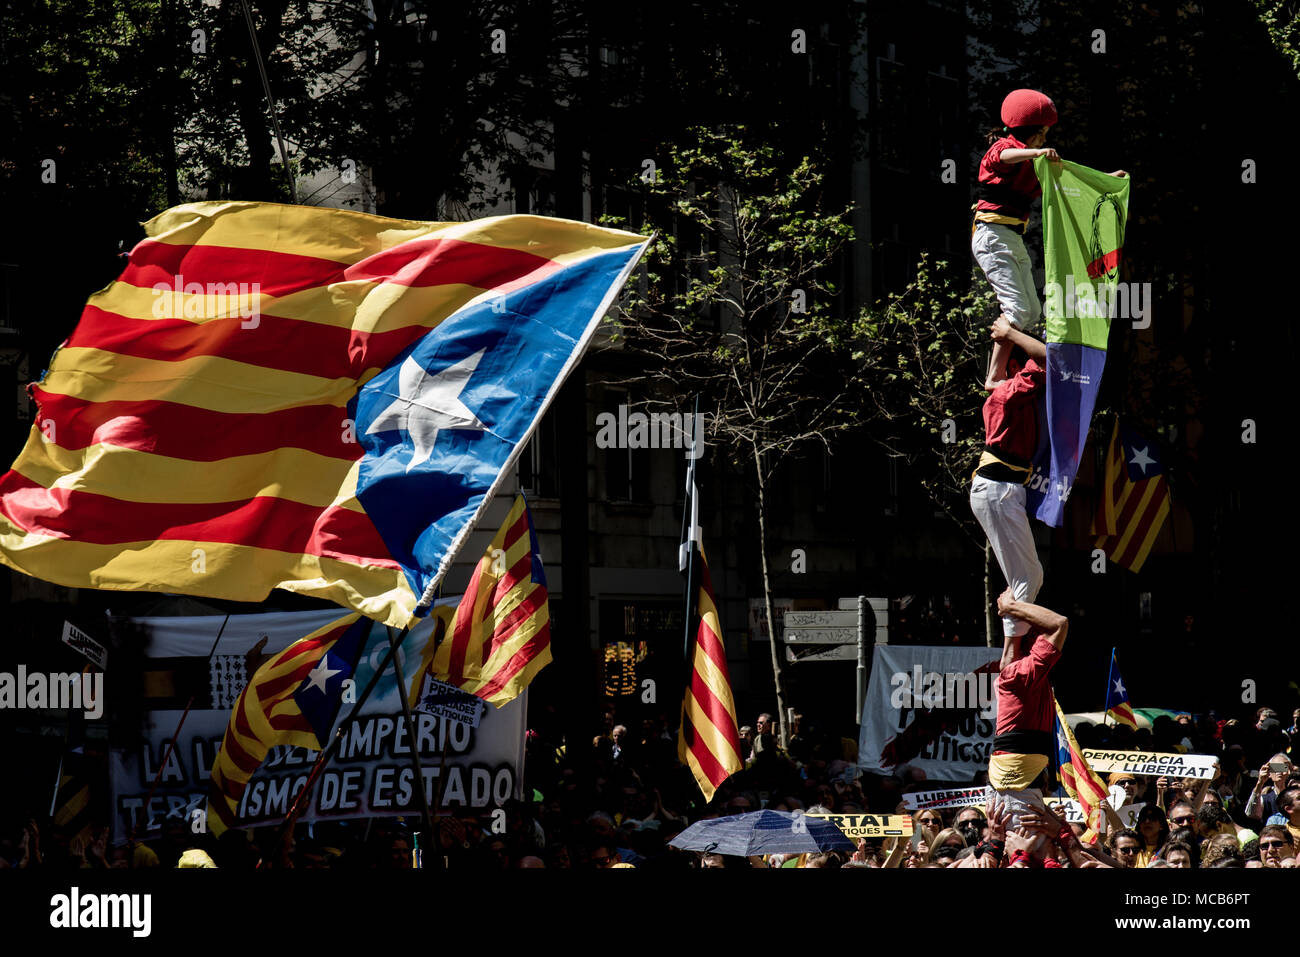 Barcelona, Spain 15Th April 2018 Castellers Form A Human Tower Or Castell  Among Hundreds Of Thousands Pro-Independence Supporters Marching By The  Streets Of